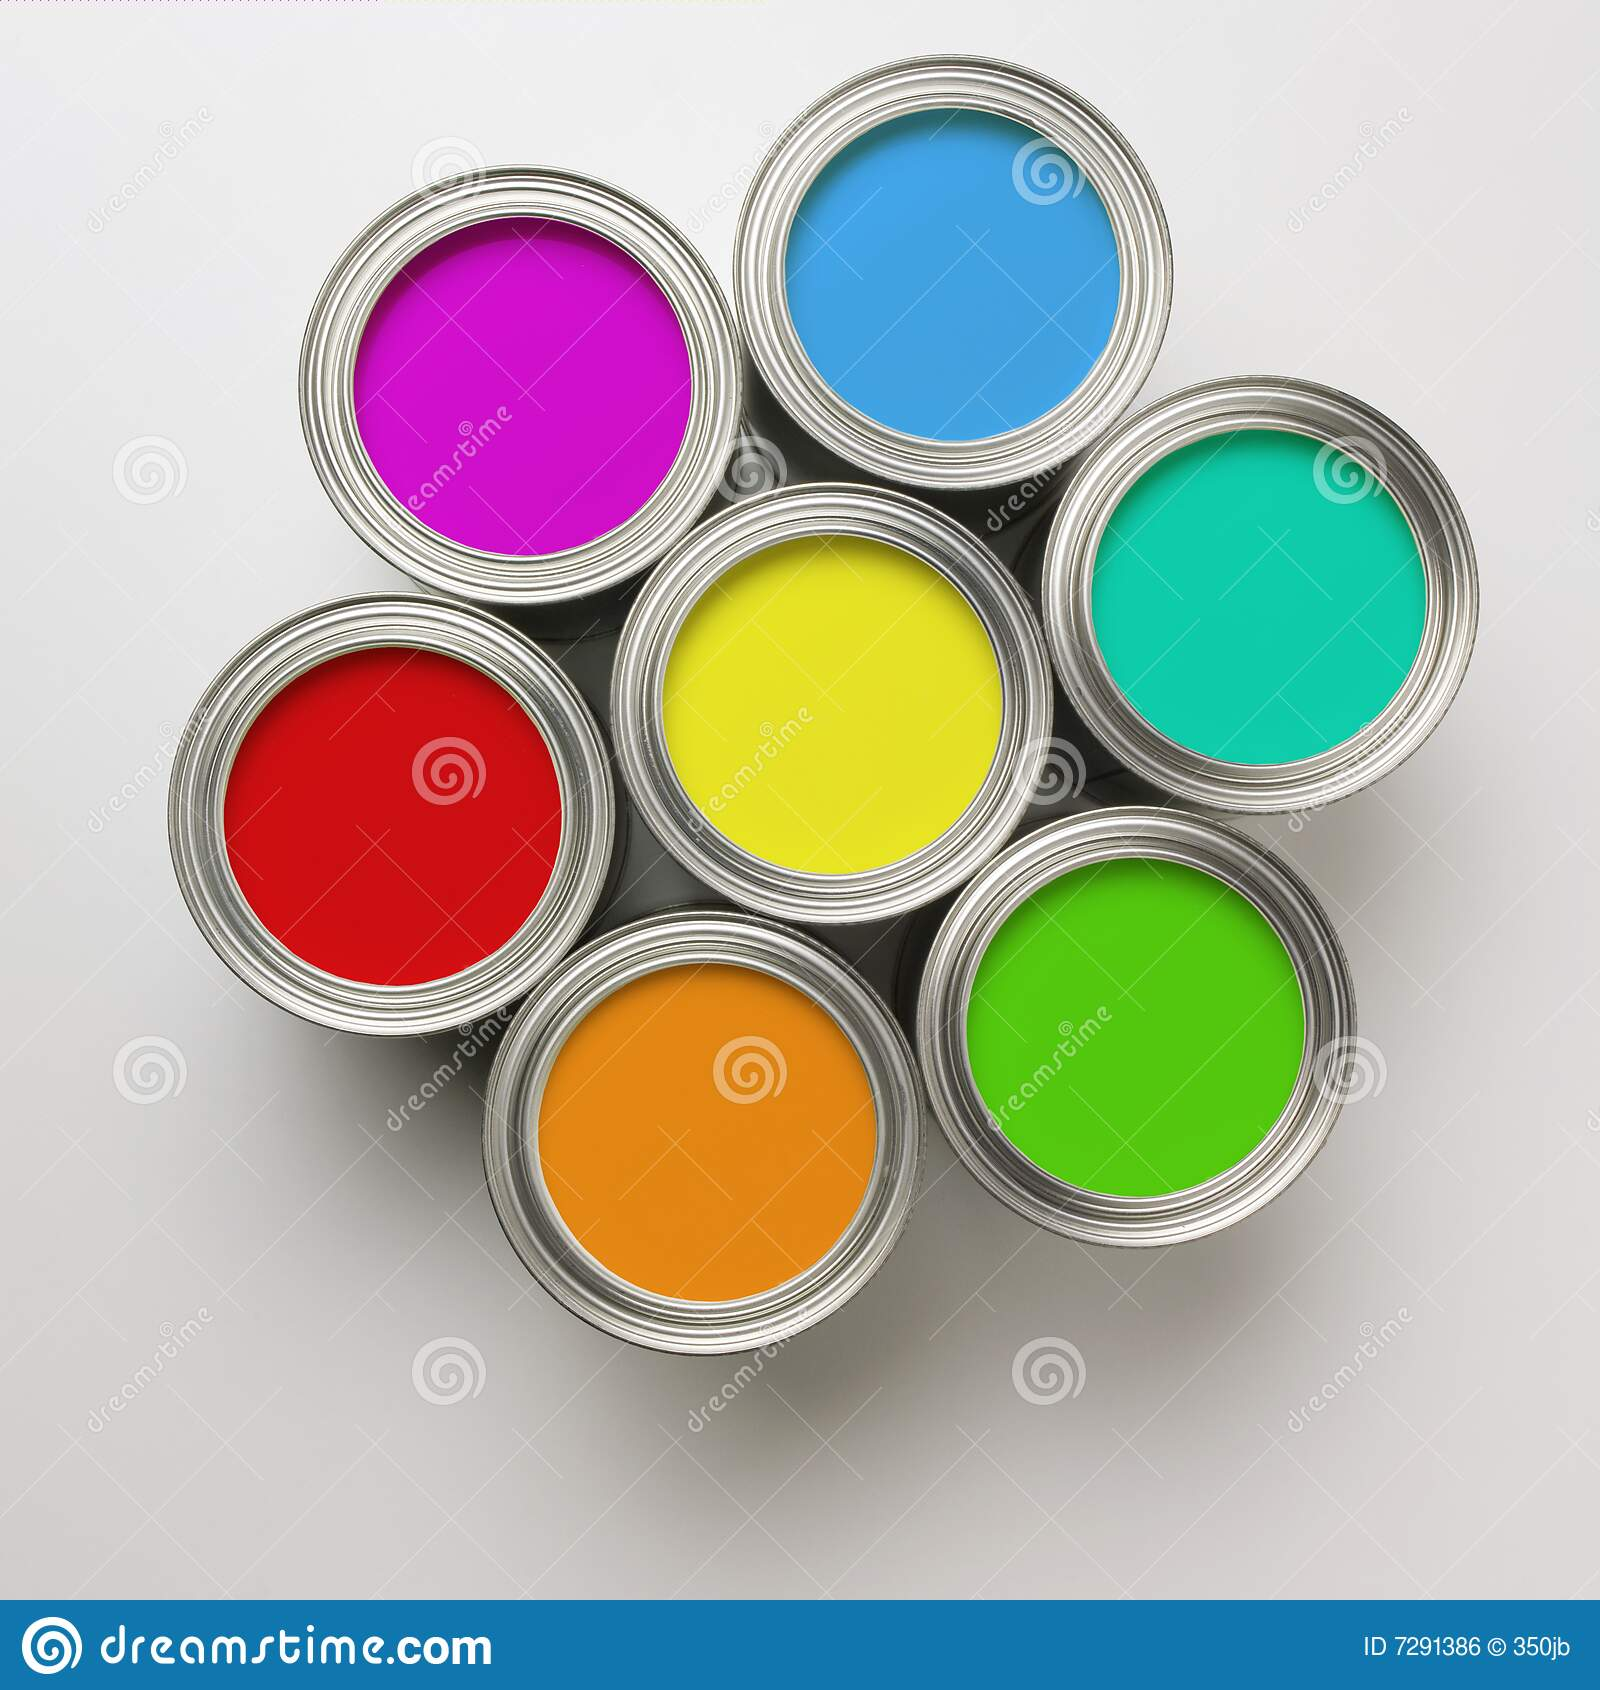 Https Www Dreamstime Com Royalty Free Stock Image Paint Cans Circle Image7291386